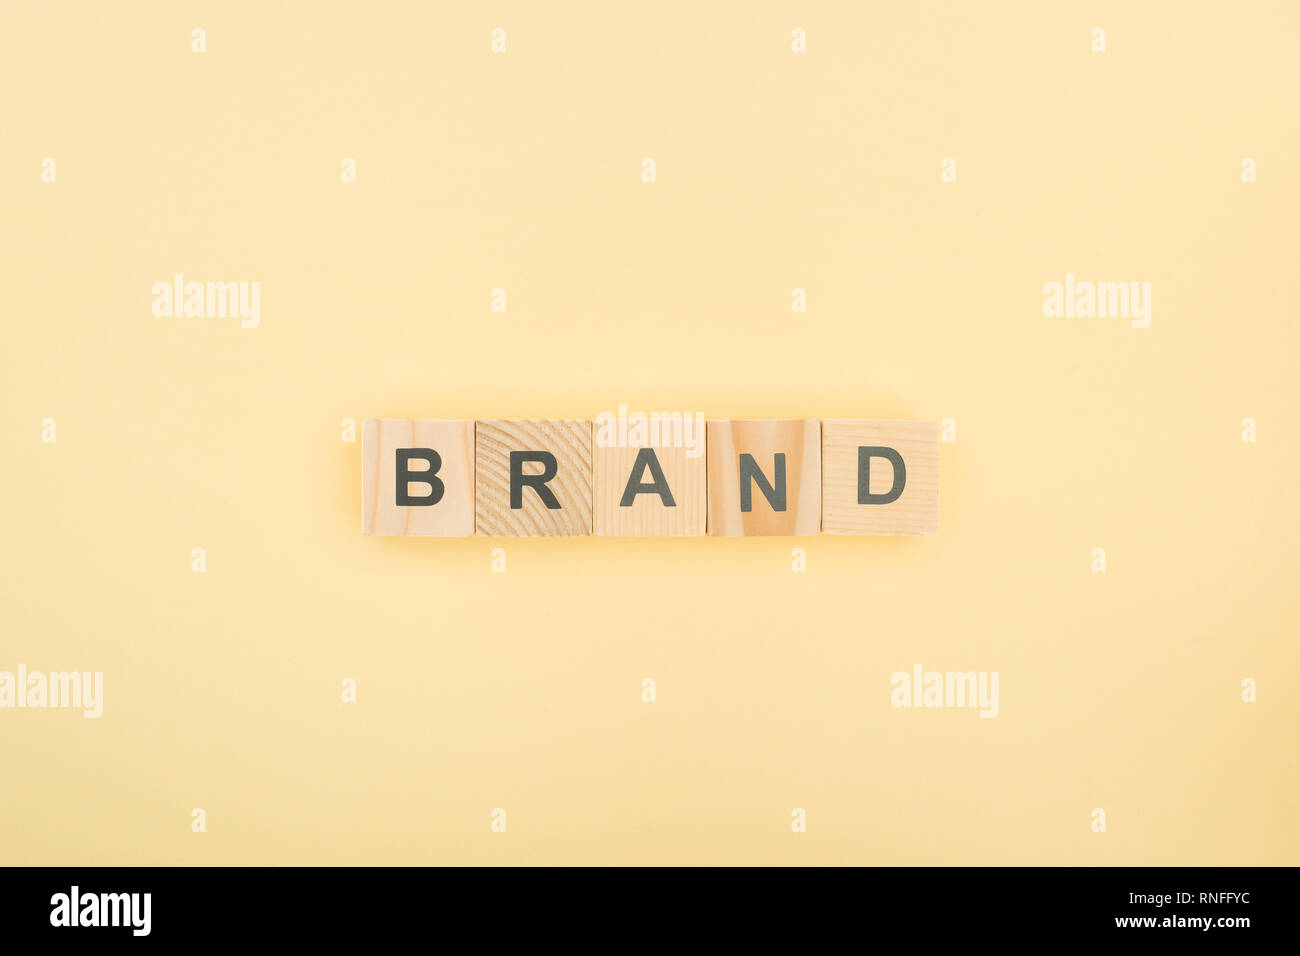 top view of brand lettering made of wooden cubes on yellow background - Stock Image